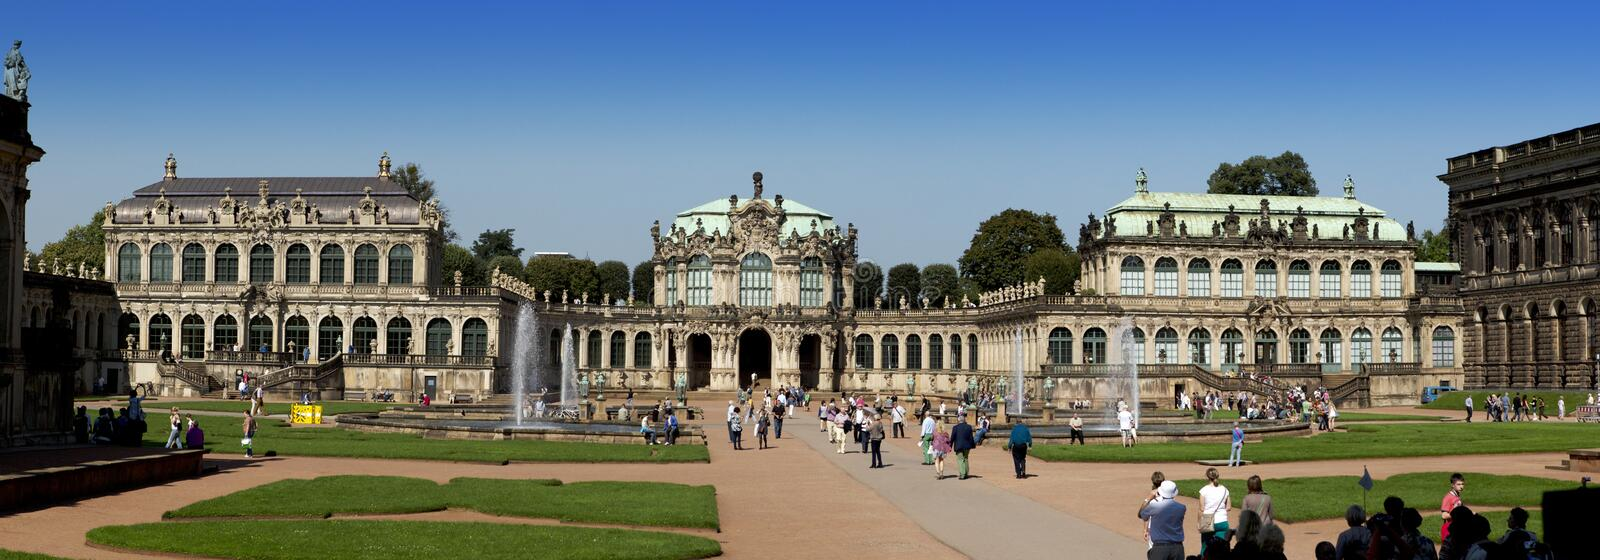 DRESDEN, GERMANY - SEPTEMBER 17: Zwinger palace, XVIII century - famous historic building on September 17, 2014 in Dresden royalty free stock photos